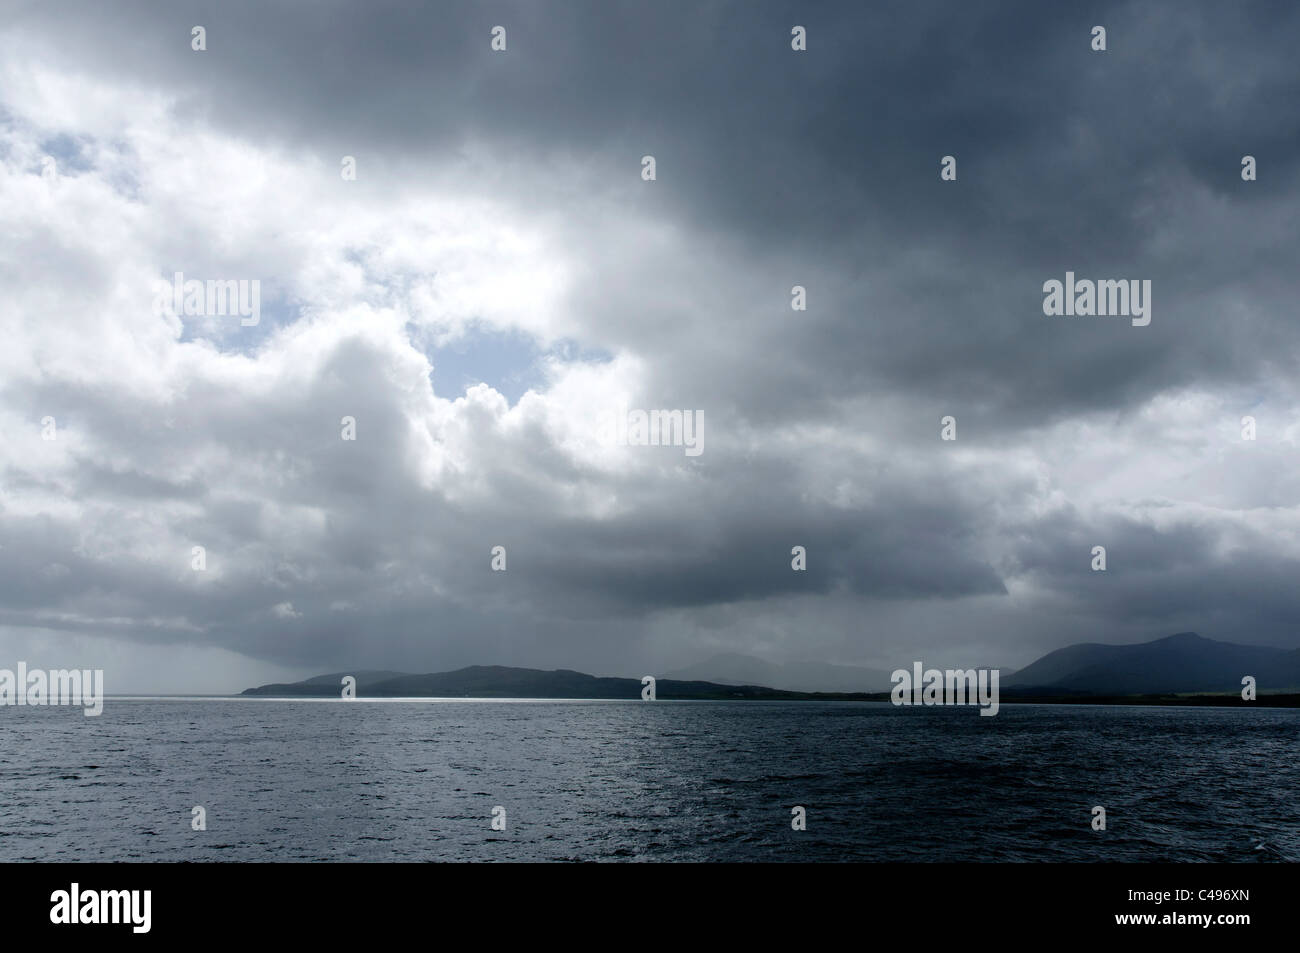 A cloudy and showery afternoon on the Sound of Mull. - Stock Image